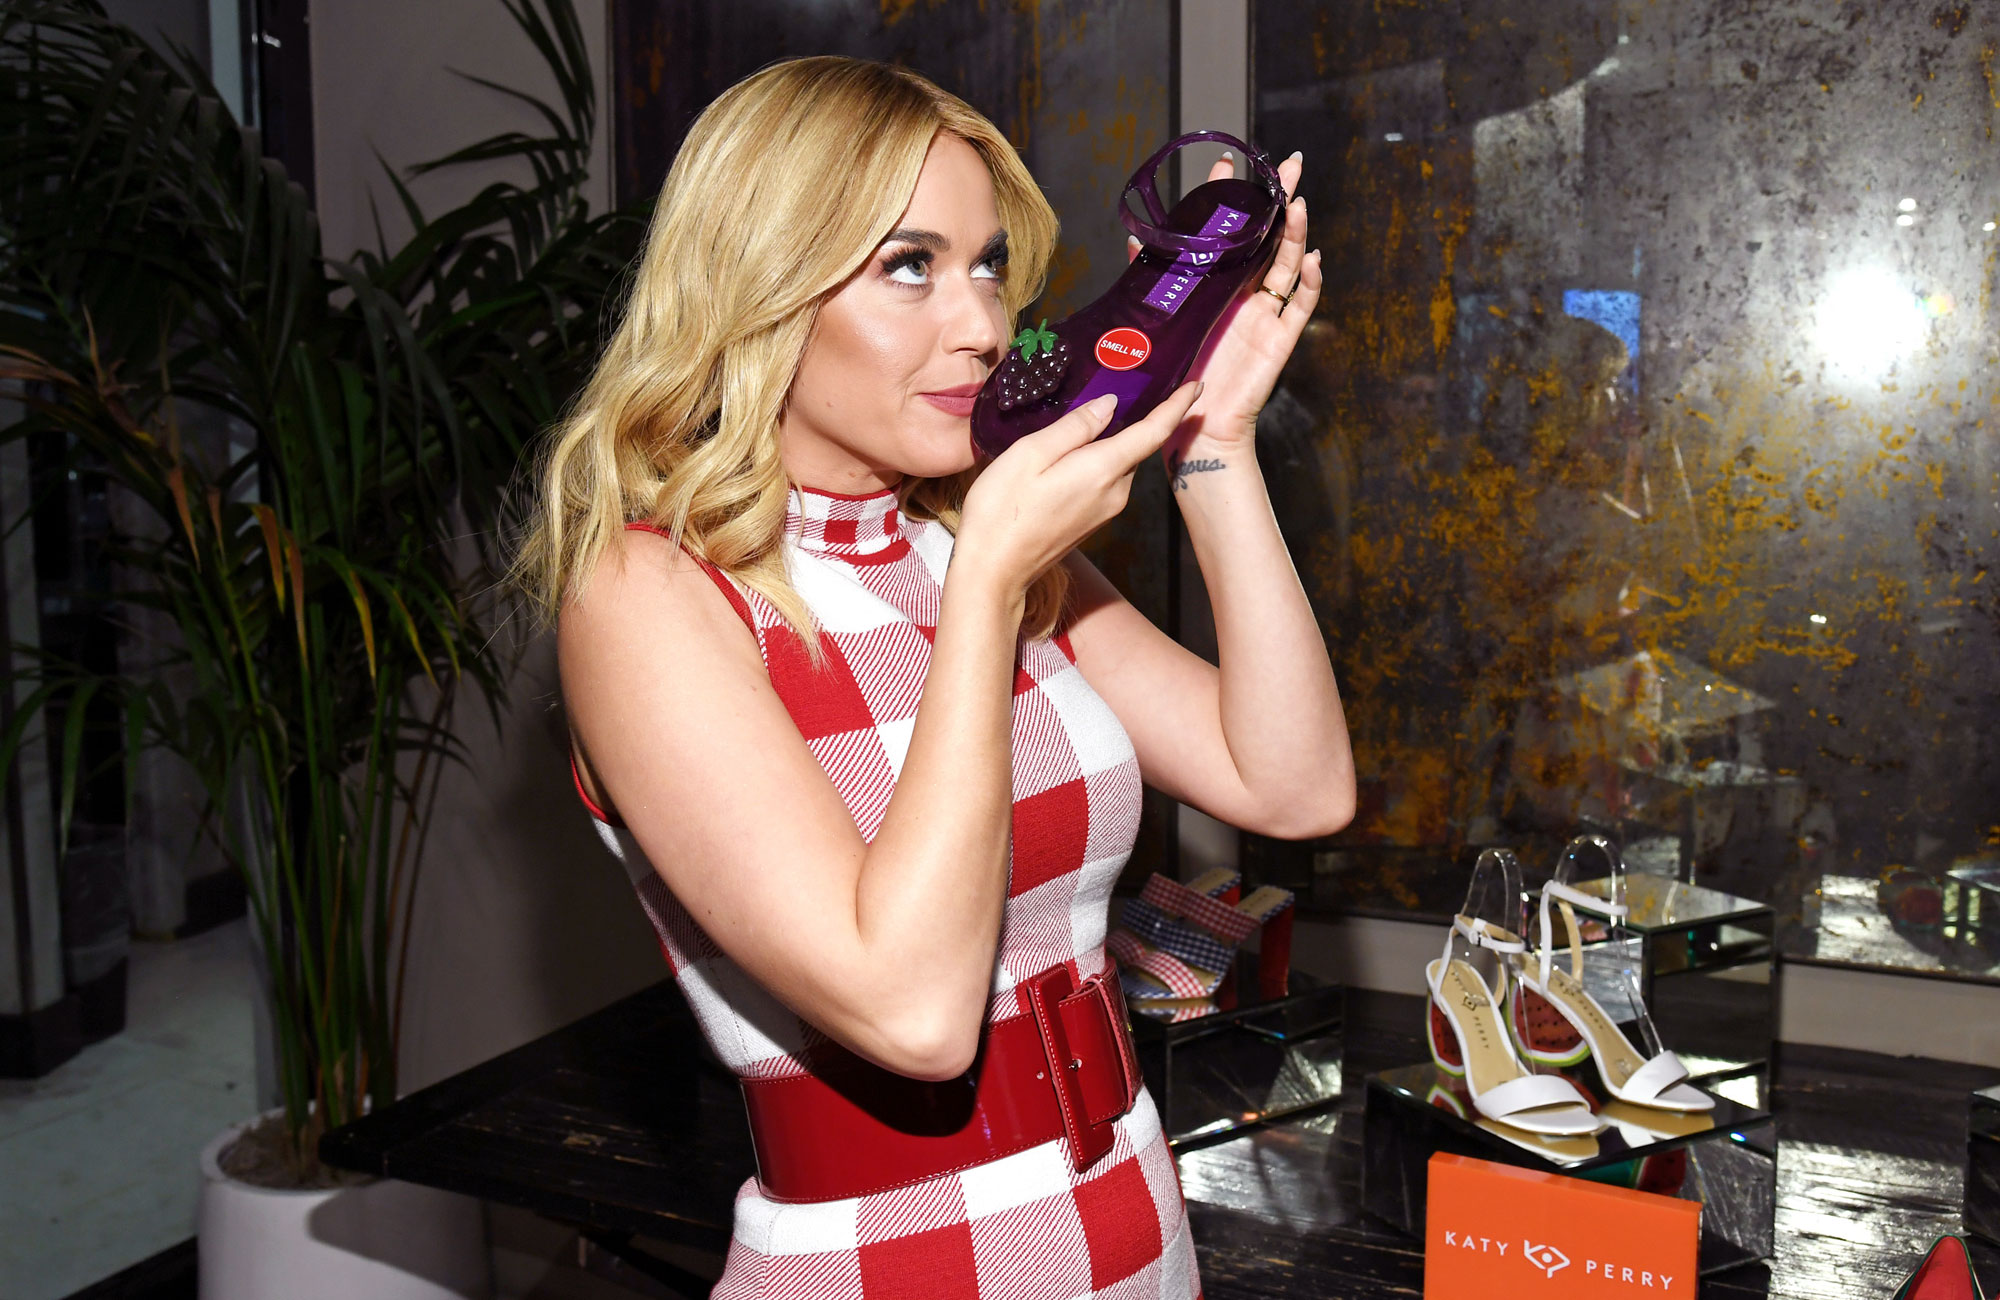 Katy Perry's Shoes Smell Like Fruit Macy's Herald Square - Katy Perry celebrates the launch of her latest Shoe Collection at Macy's Herald Square on May 08, 2019 in New York City.